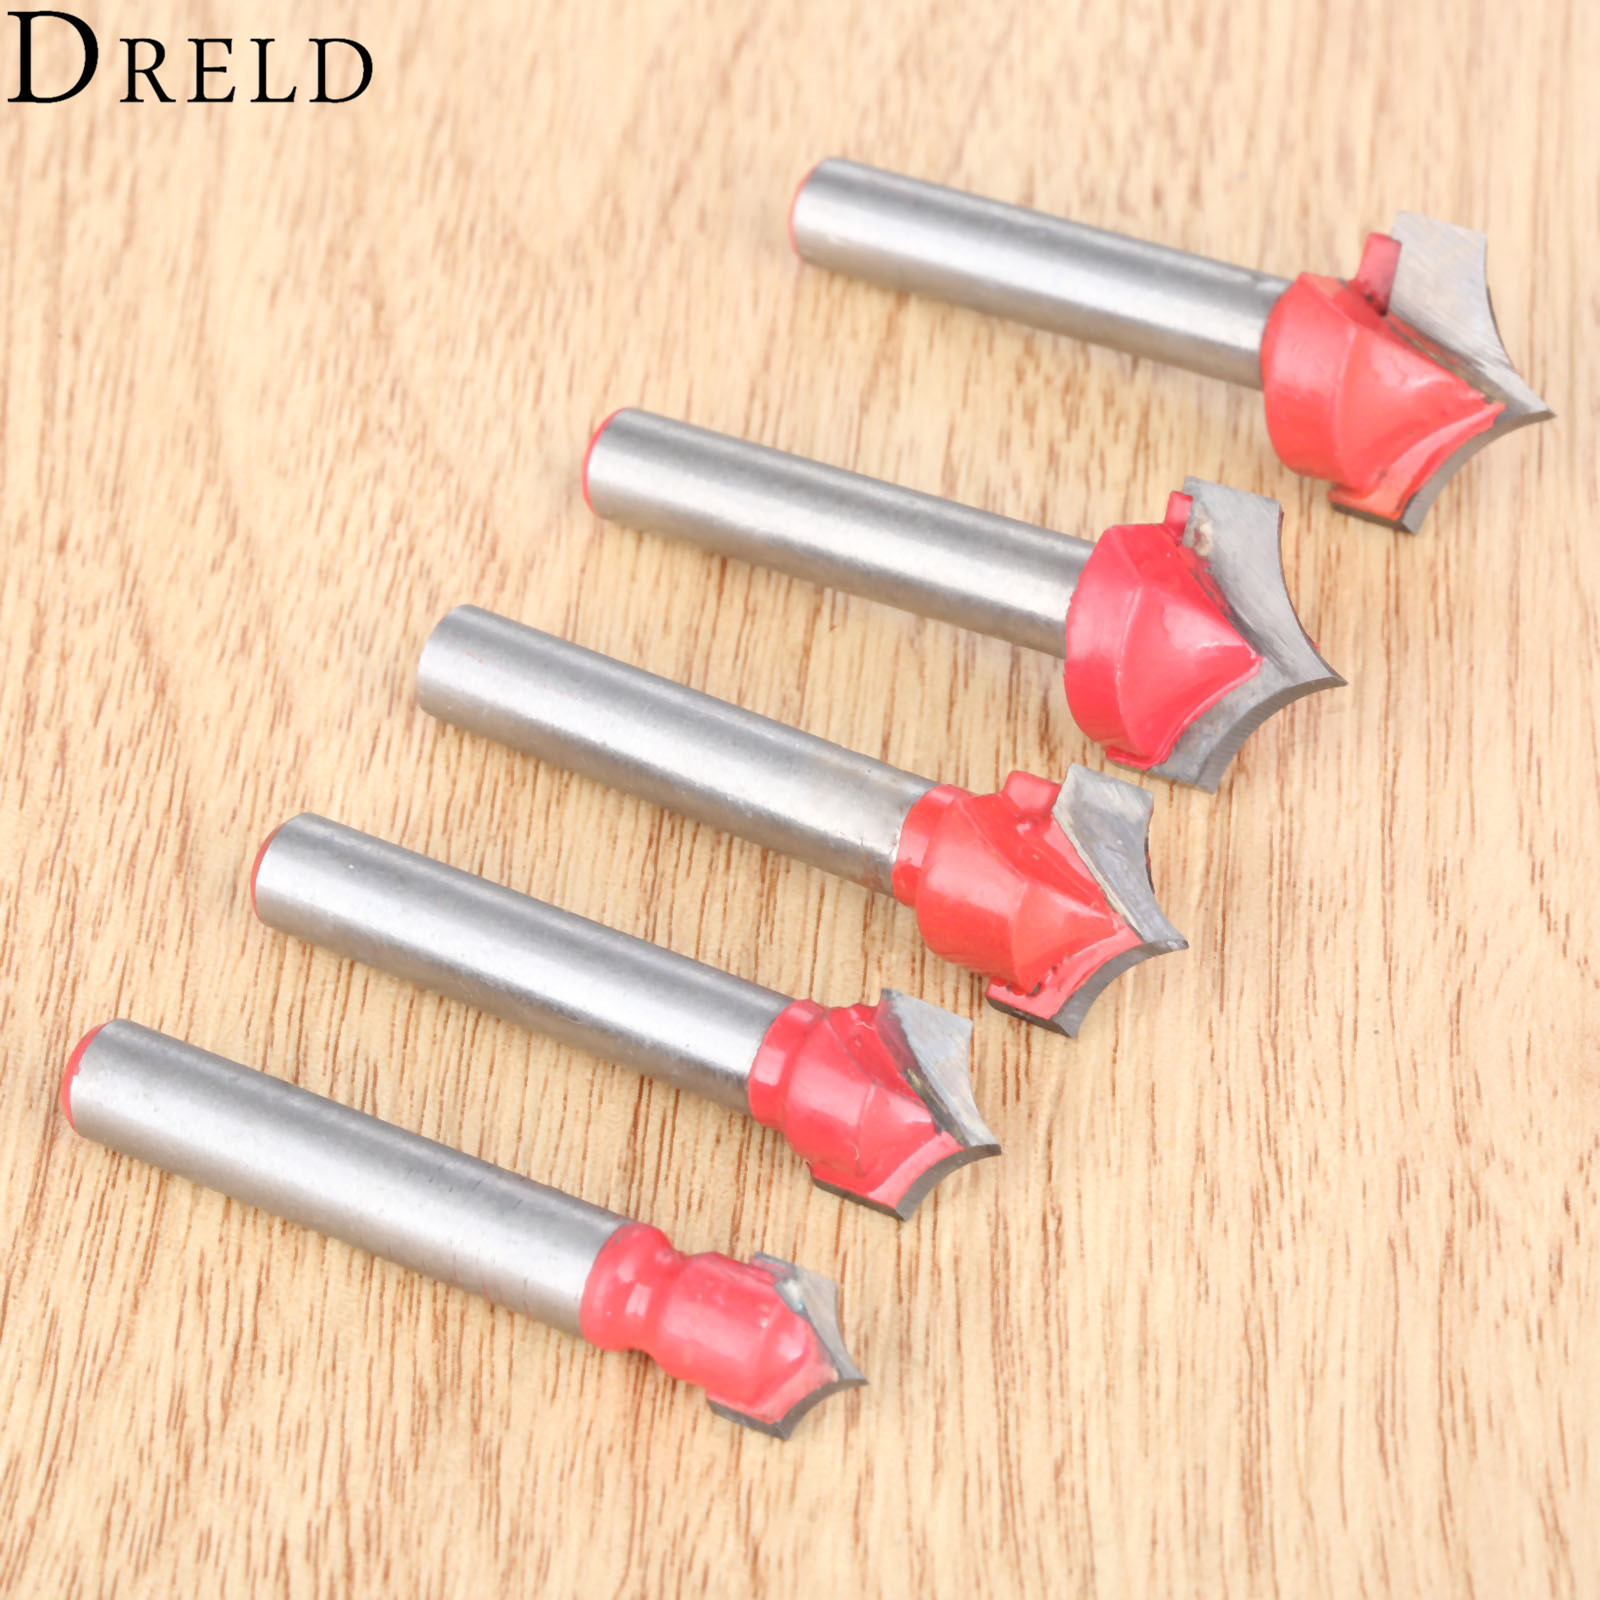 DRELD 1pc 6mm Shank V Groove Router Bits CNC Engraving End Mill Wood Carving Milling Cutter Wookwooking Carpentry Tools Fresa